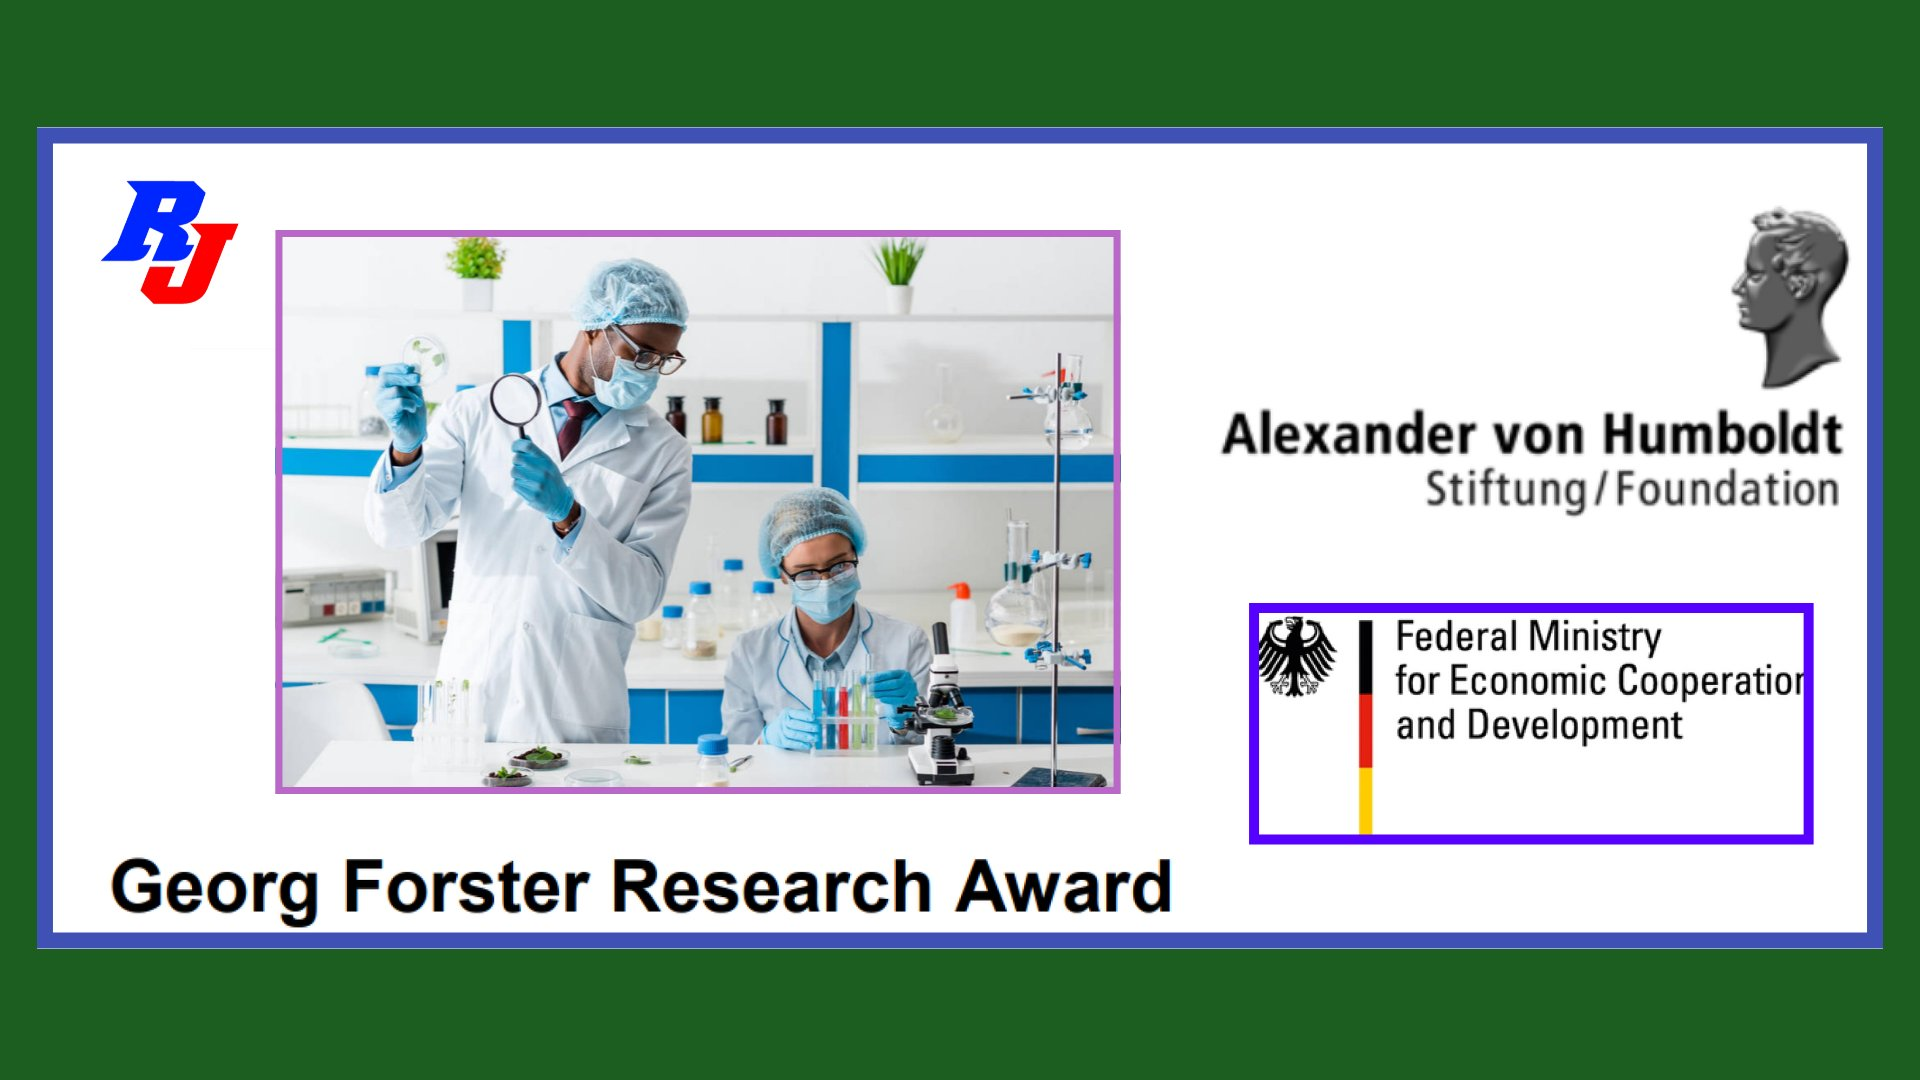 Georg Forster Research Award by Alexander von Humboldt Foundation, Germany